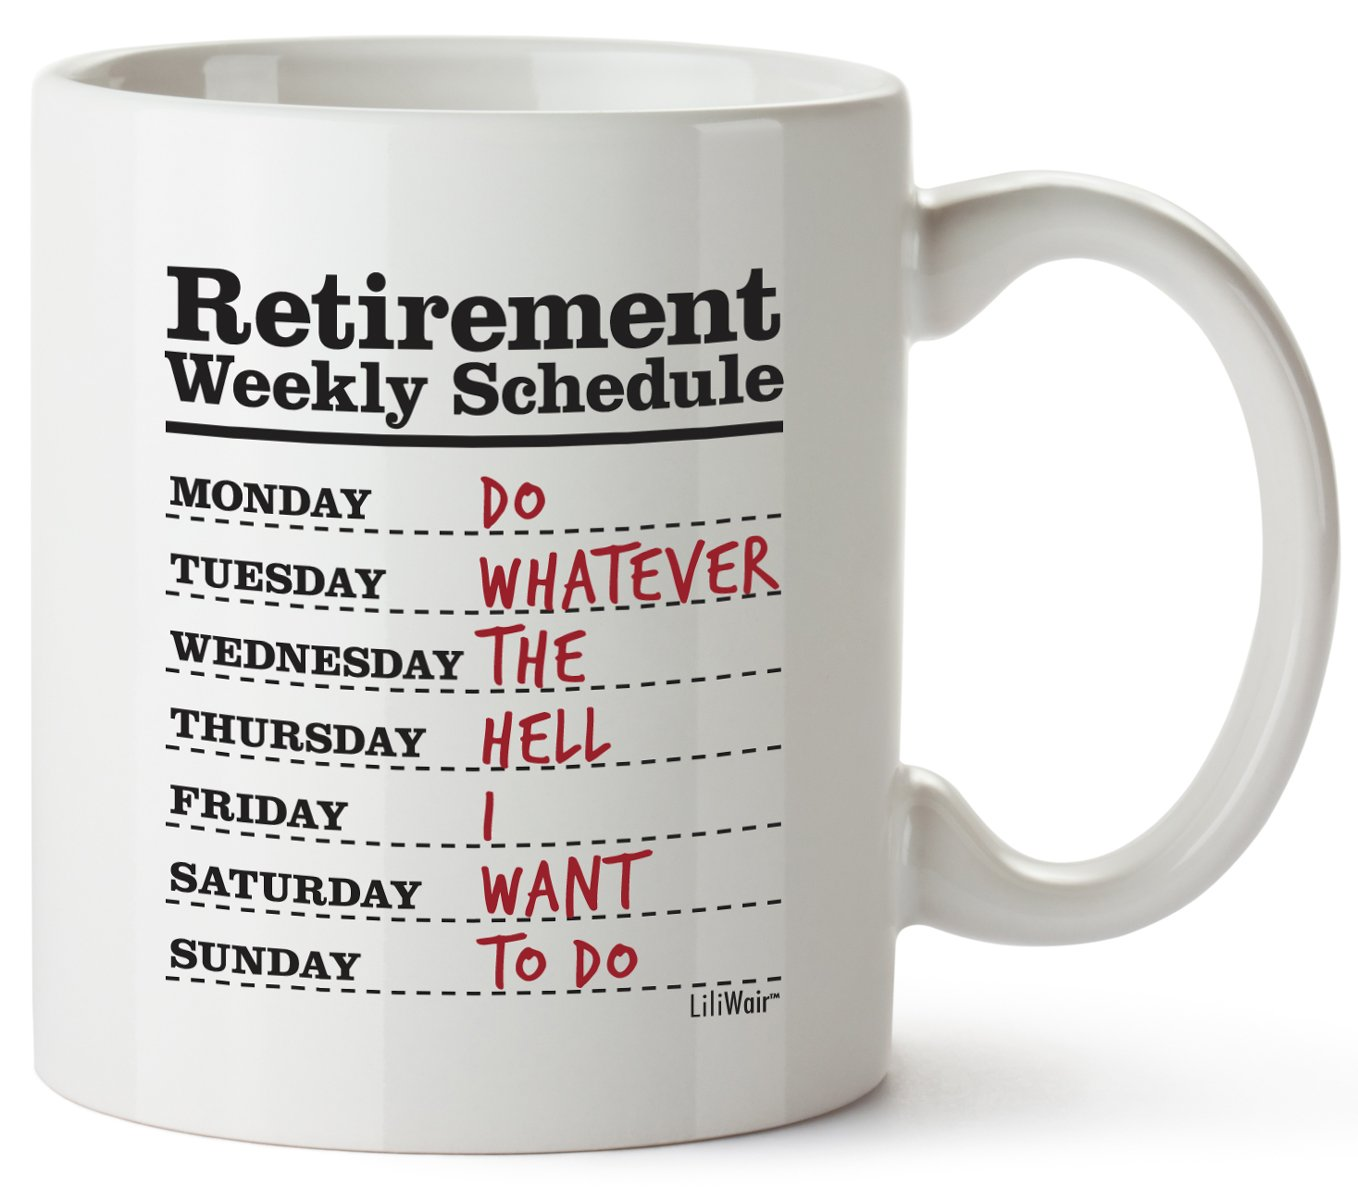 Funny Retirement Gifts for Women Men Dad Mom. Retirement Coffee Mug Gift. Retired Schedule Calendar Mugs for Coworkers Office & Family. Unique Novelty Ideas for Her Nurses Navy Air Force Military Gag by LiliWair (Image #1)